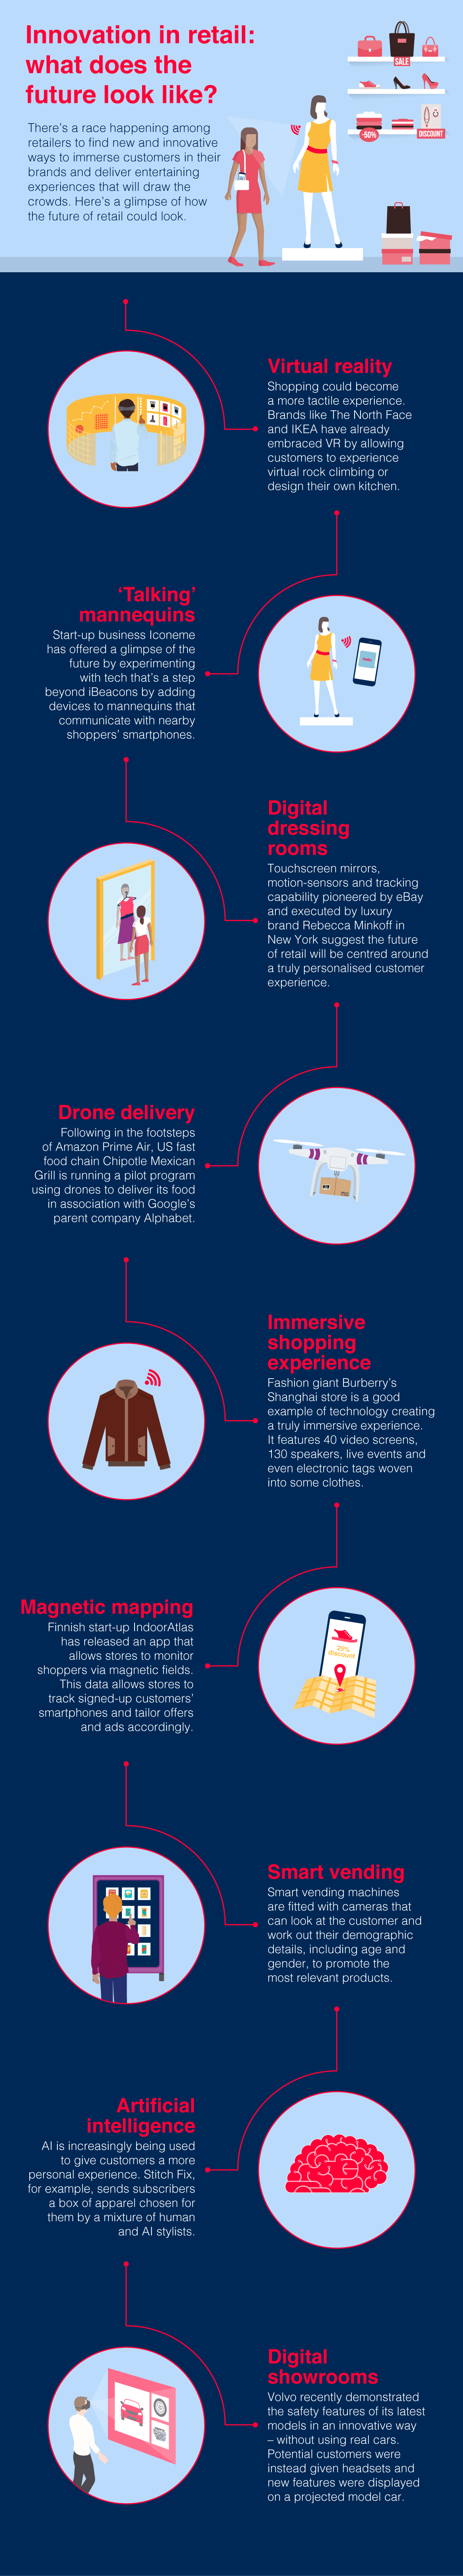 Brother retail infographic showing innovation in the retail sector